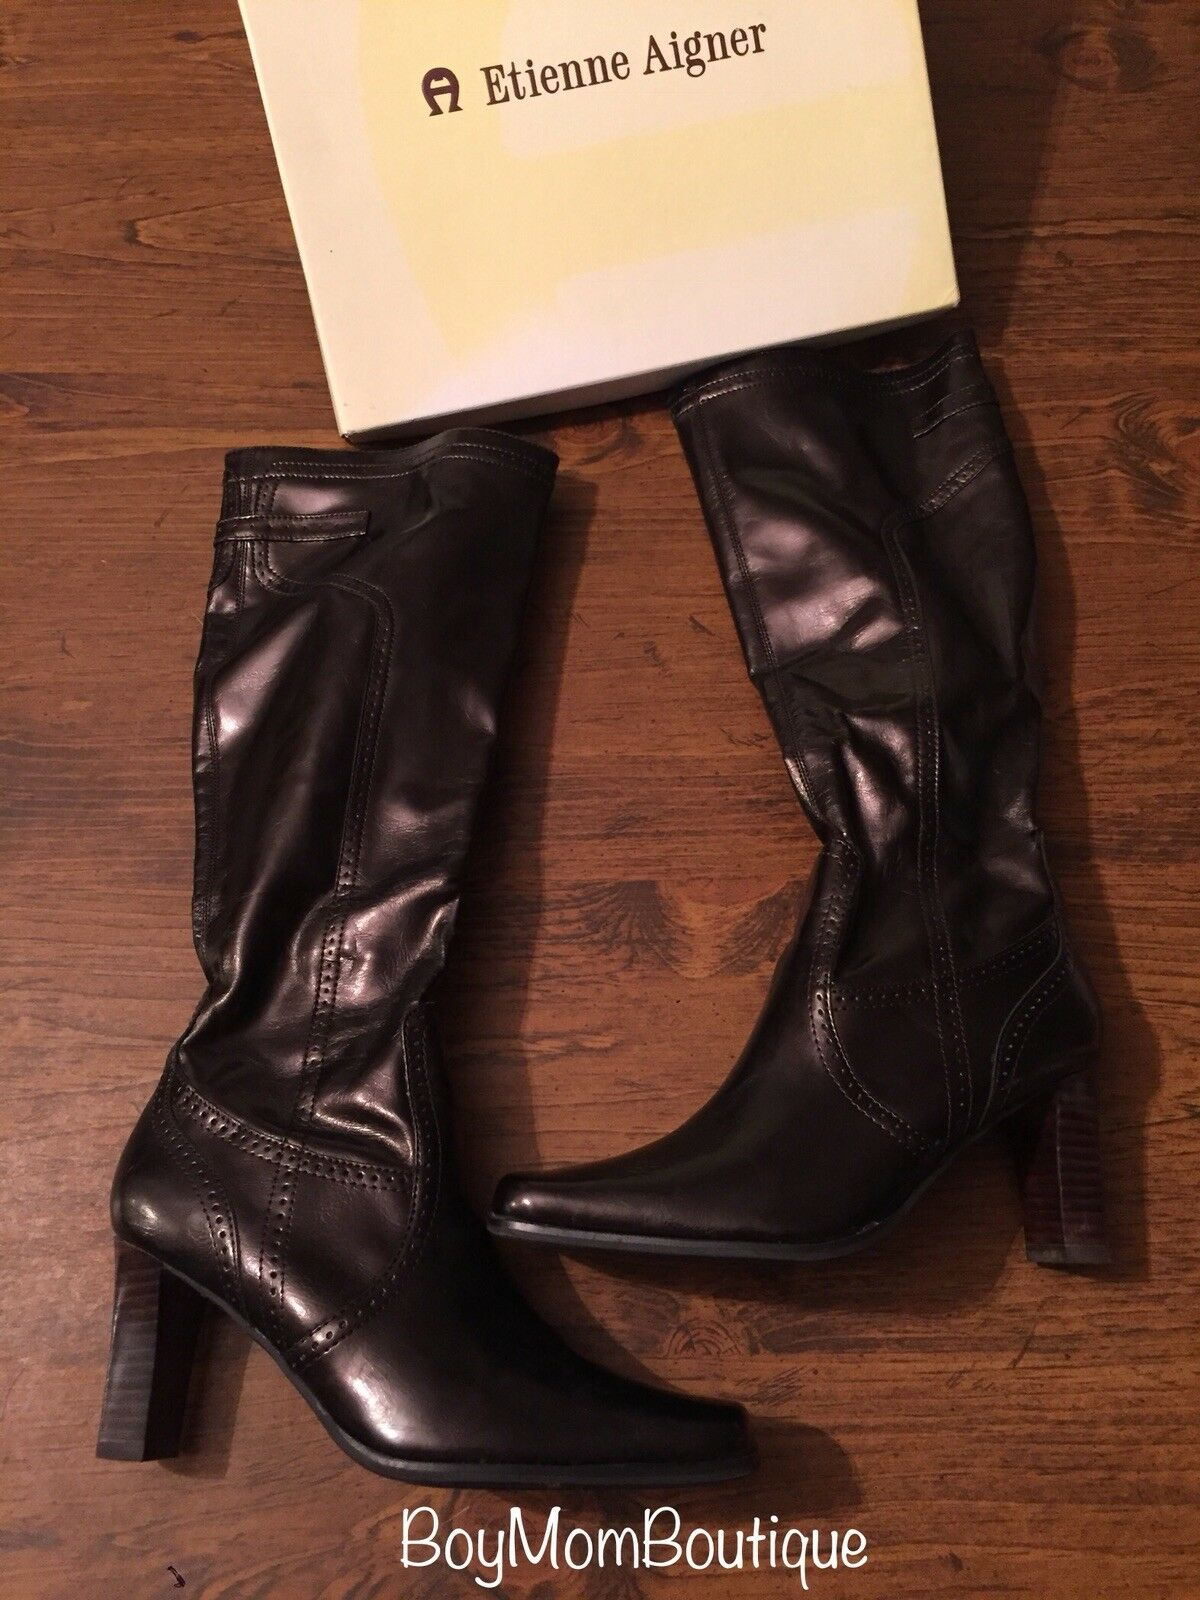 Womens Etienne Aigner Carlie High Heel Brown Patent Faux Leather Boots 6M GUC